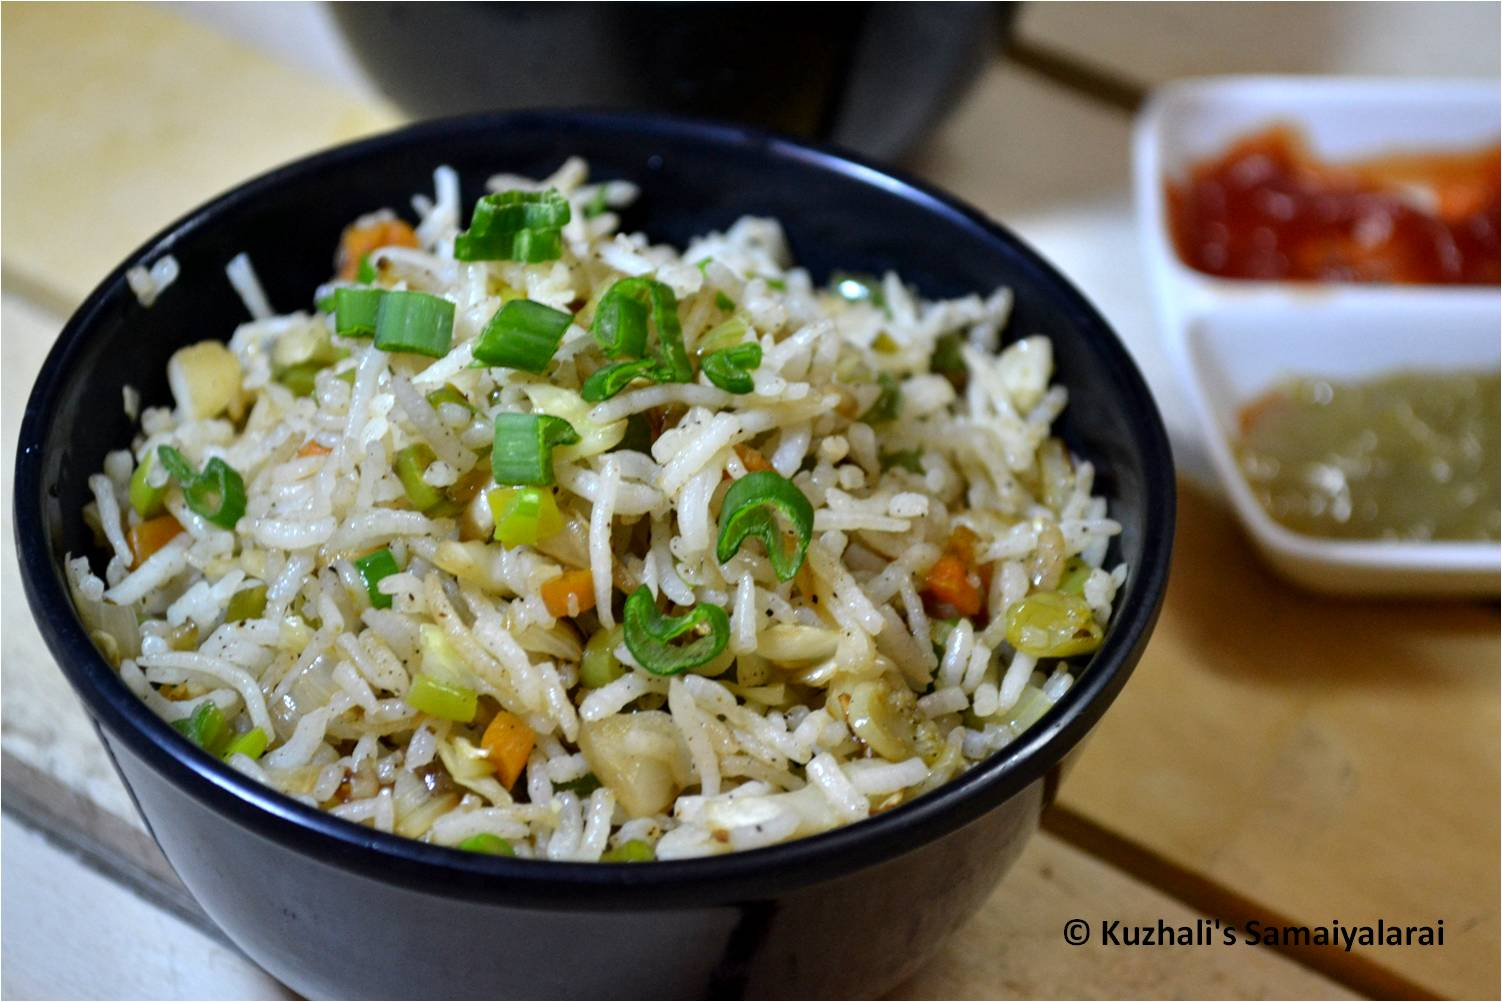 http://www.kuzhalisamaiyalarai.in/2017/12/vegetable-fried-rice-recipe-chinese.html